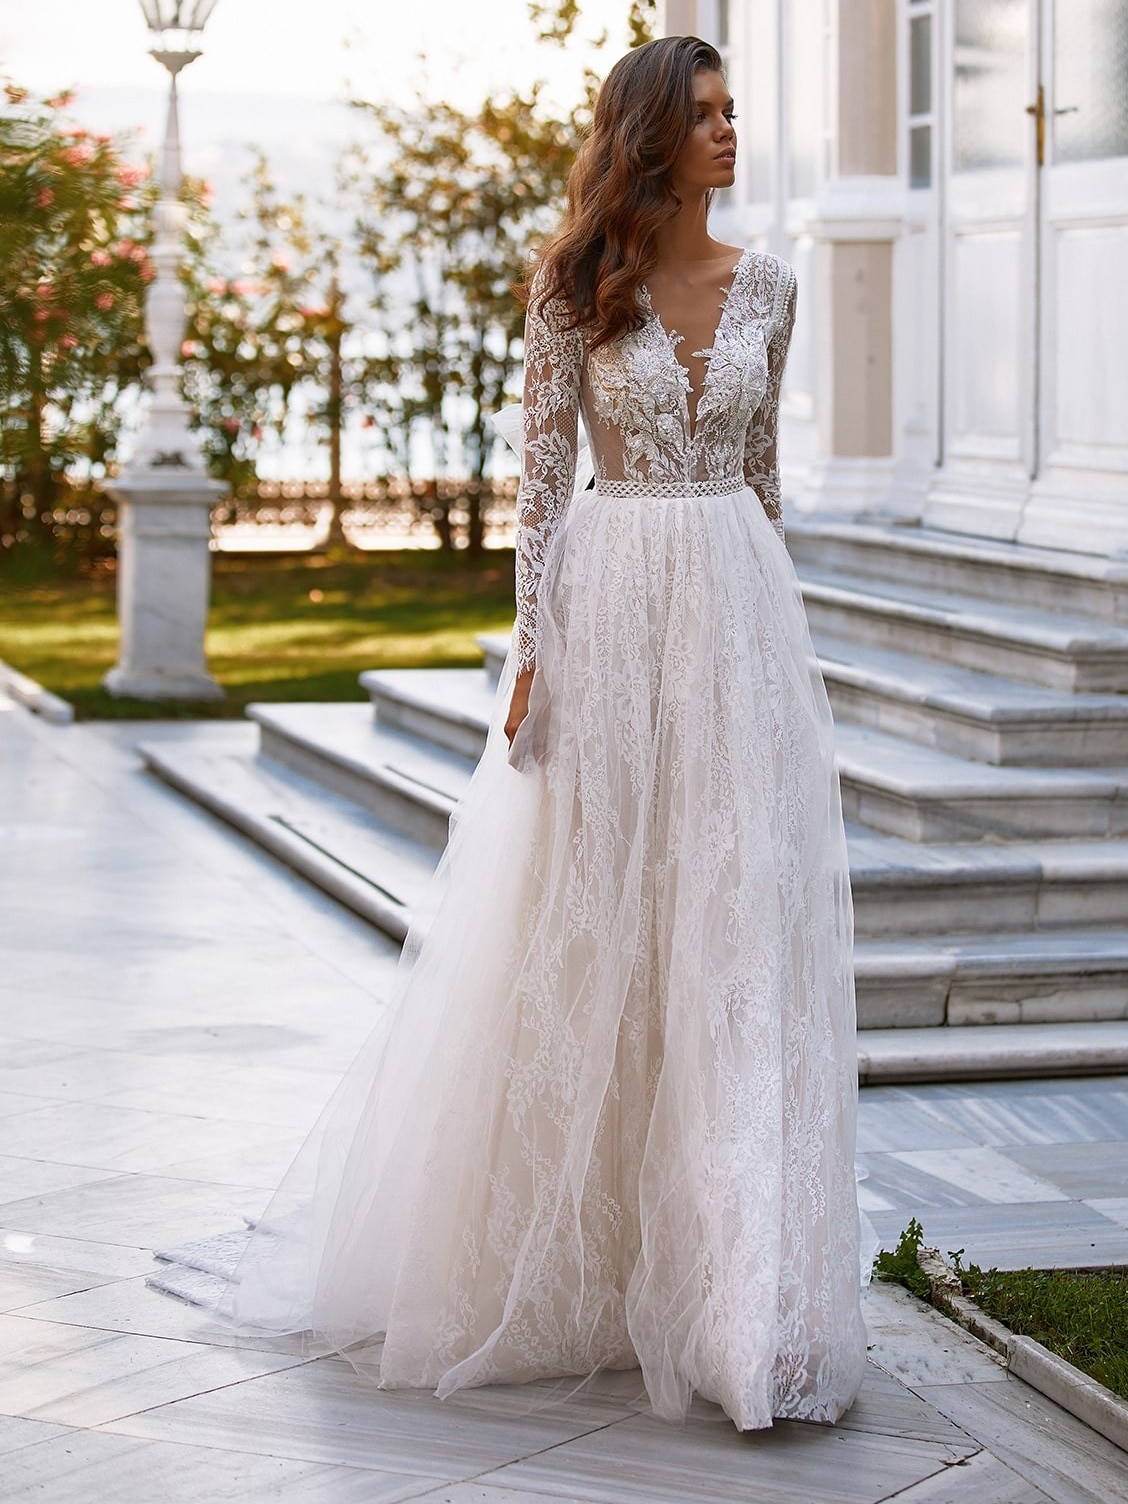 boho-lace-deep-v-neck-long-sleeves-beach-wedding-dress-2021-elegant-backless-bridal-gown-plus-size-nude-lining-factory-price